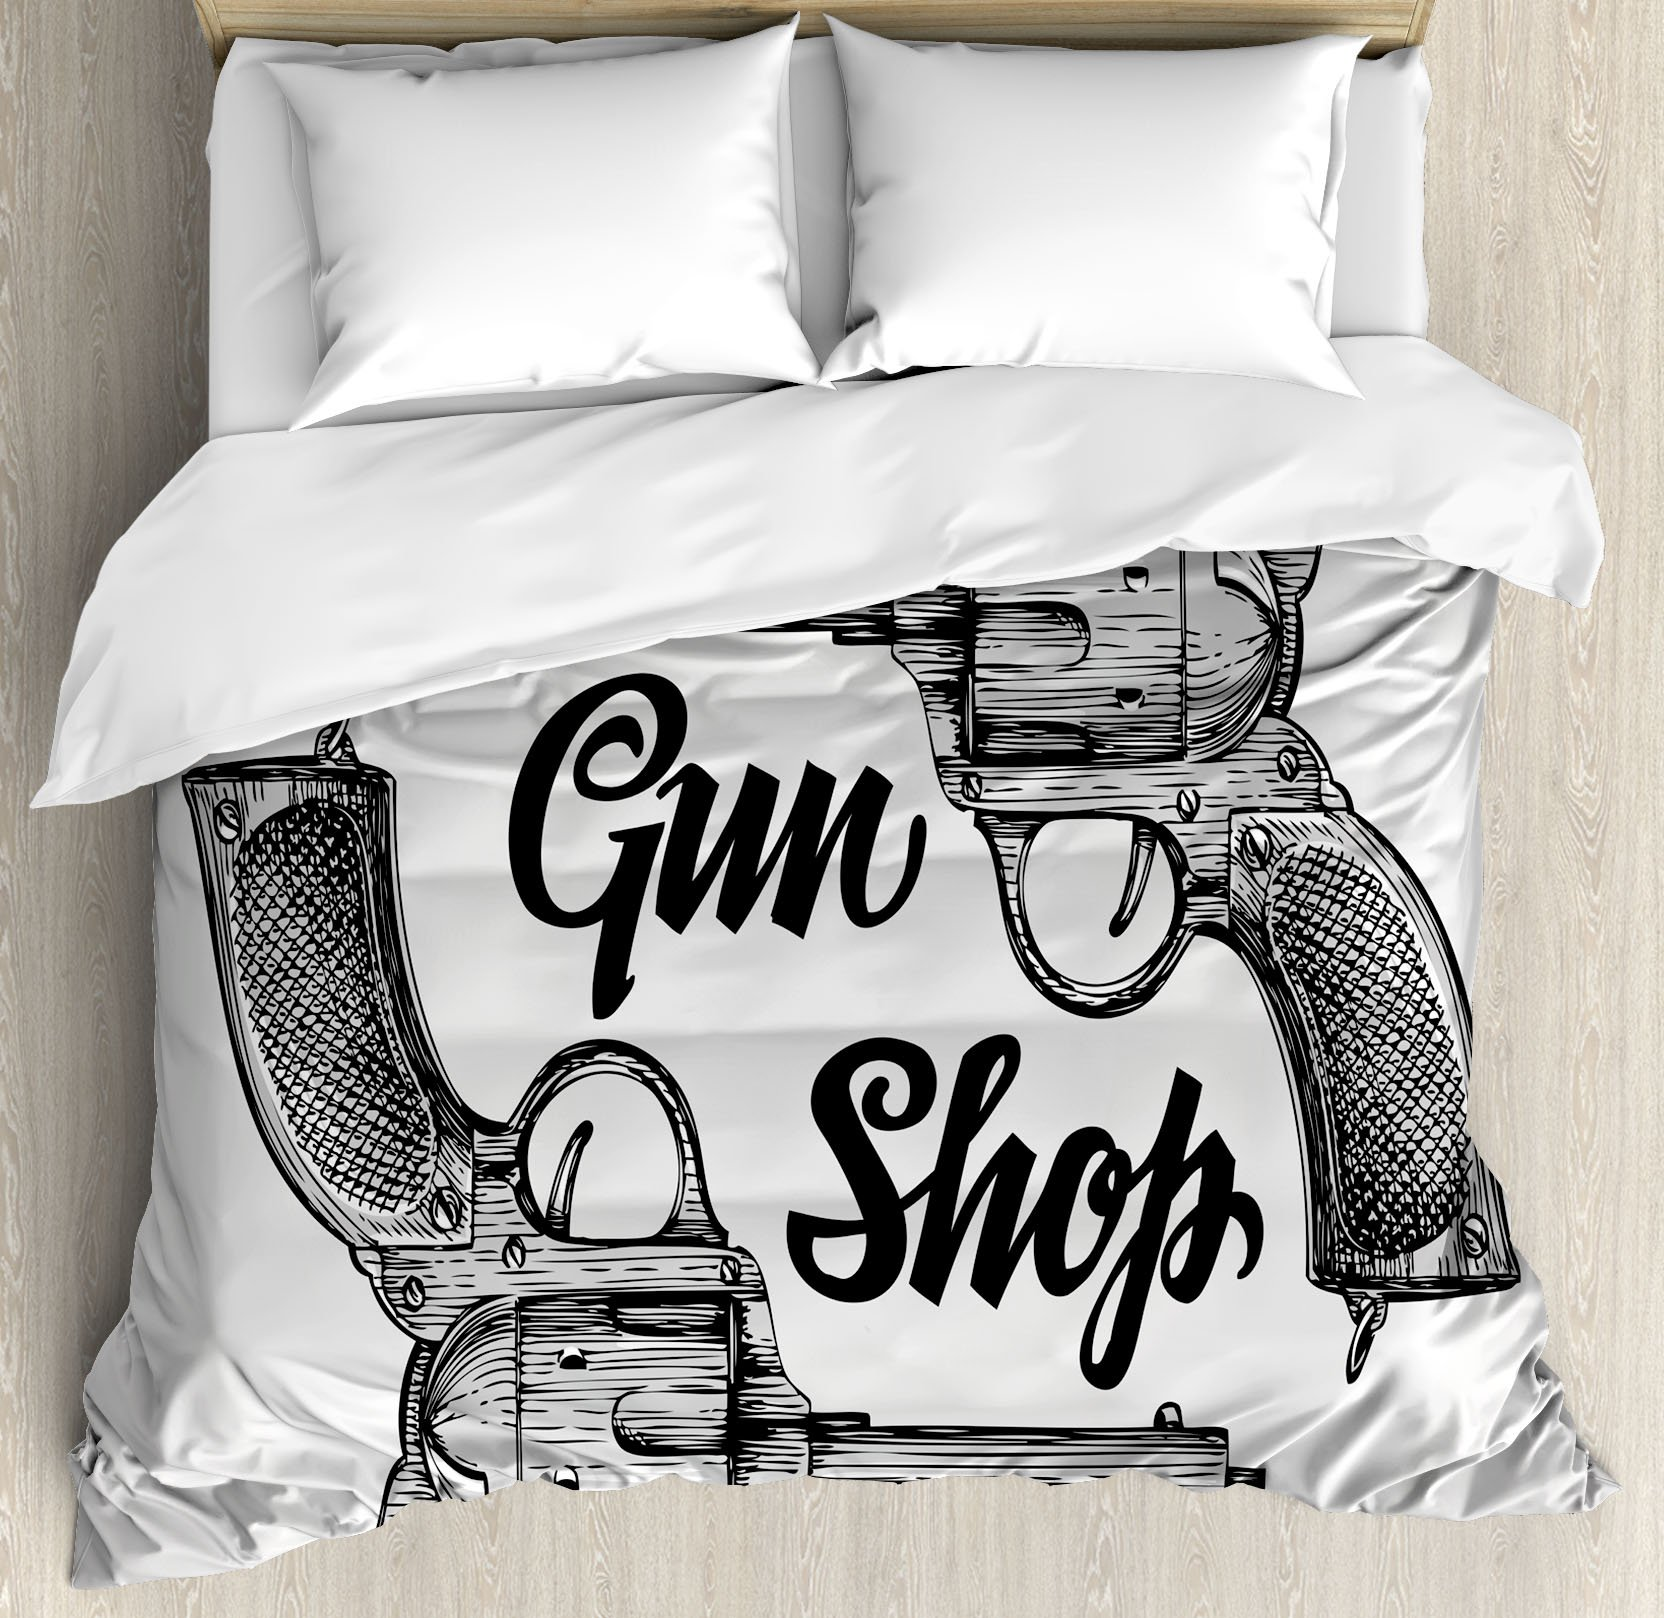 Western Queen Size Duvet Cover Set by Ambesonne, Modern Western Movies Cowboy Texas Times Sketchy Style Two Guns Pistols, Decorative 3 Piece Bedding Set with 2 Pillow Shams, Black Pale Grey